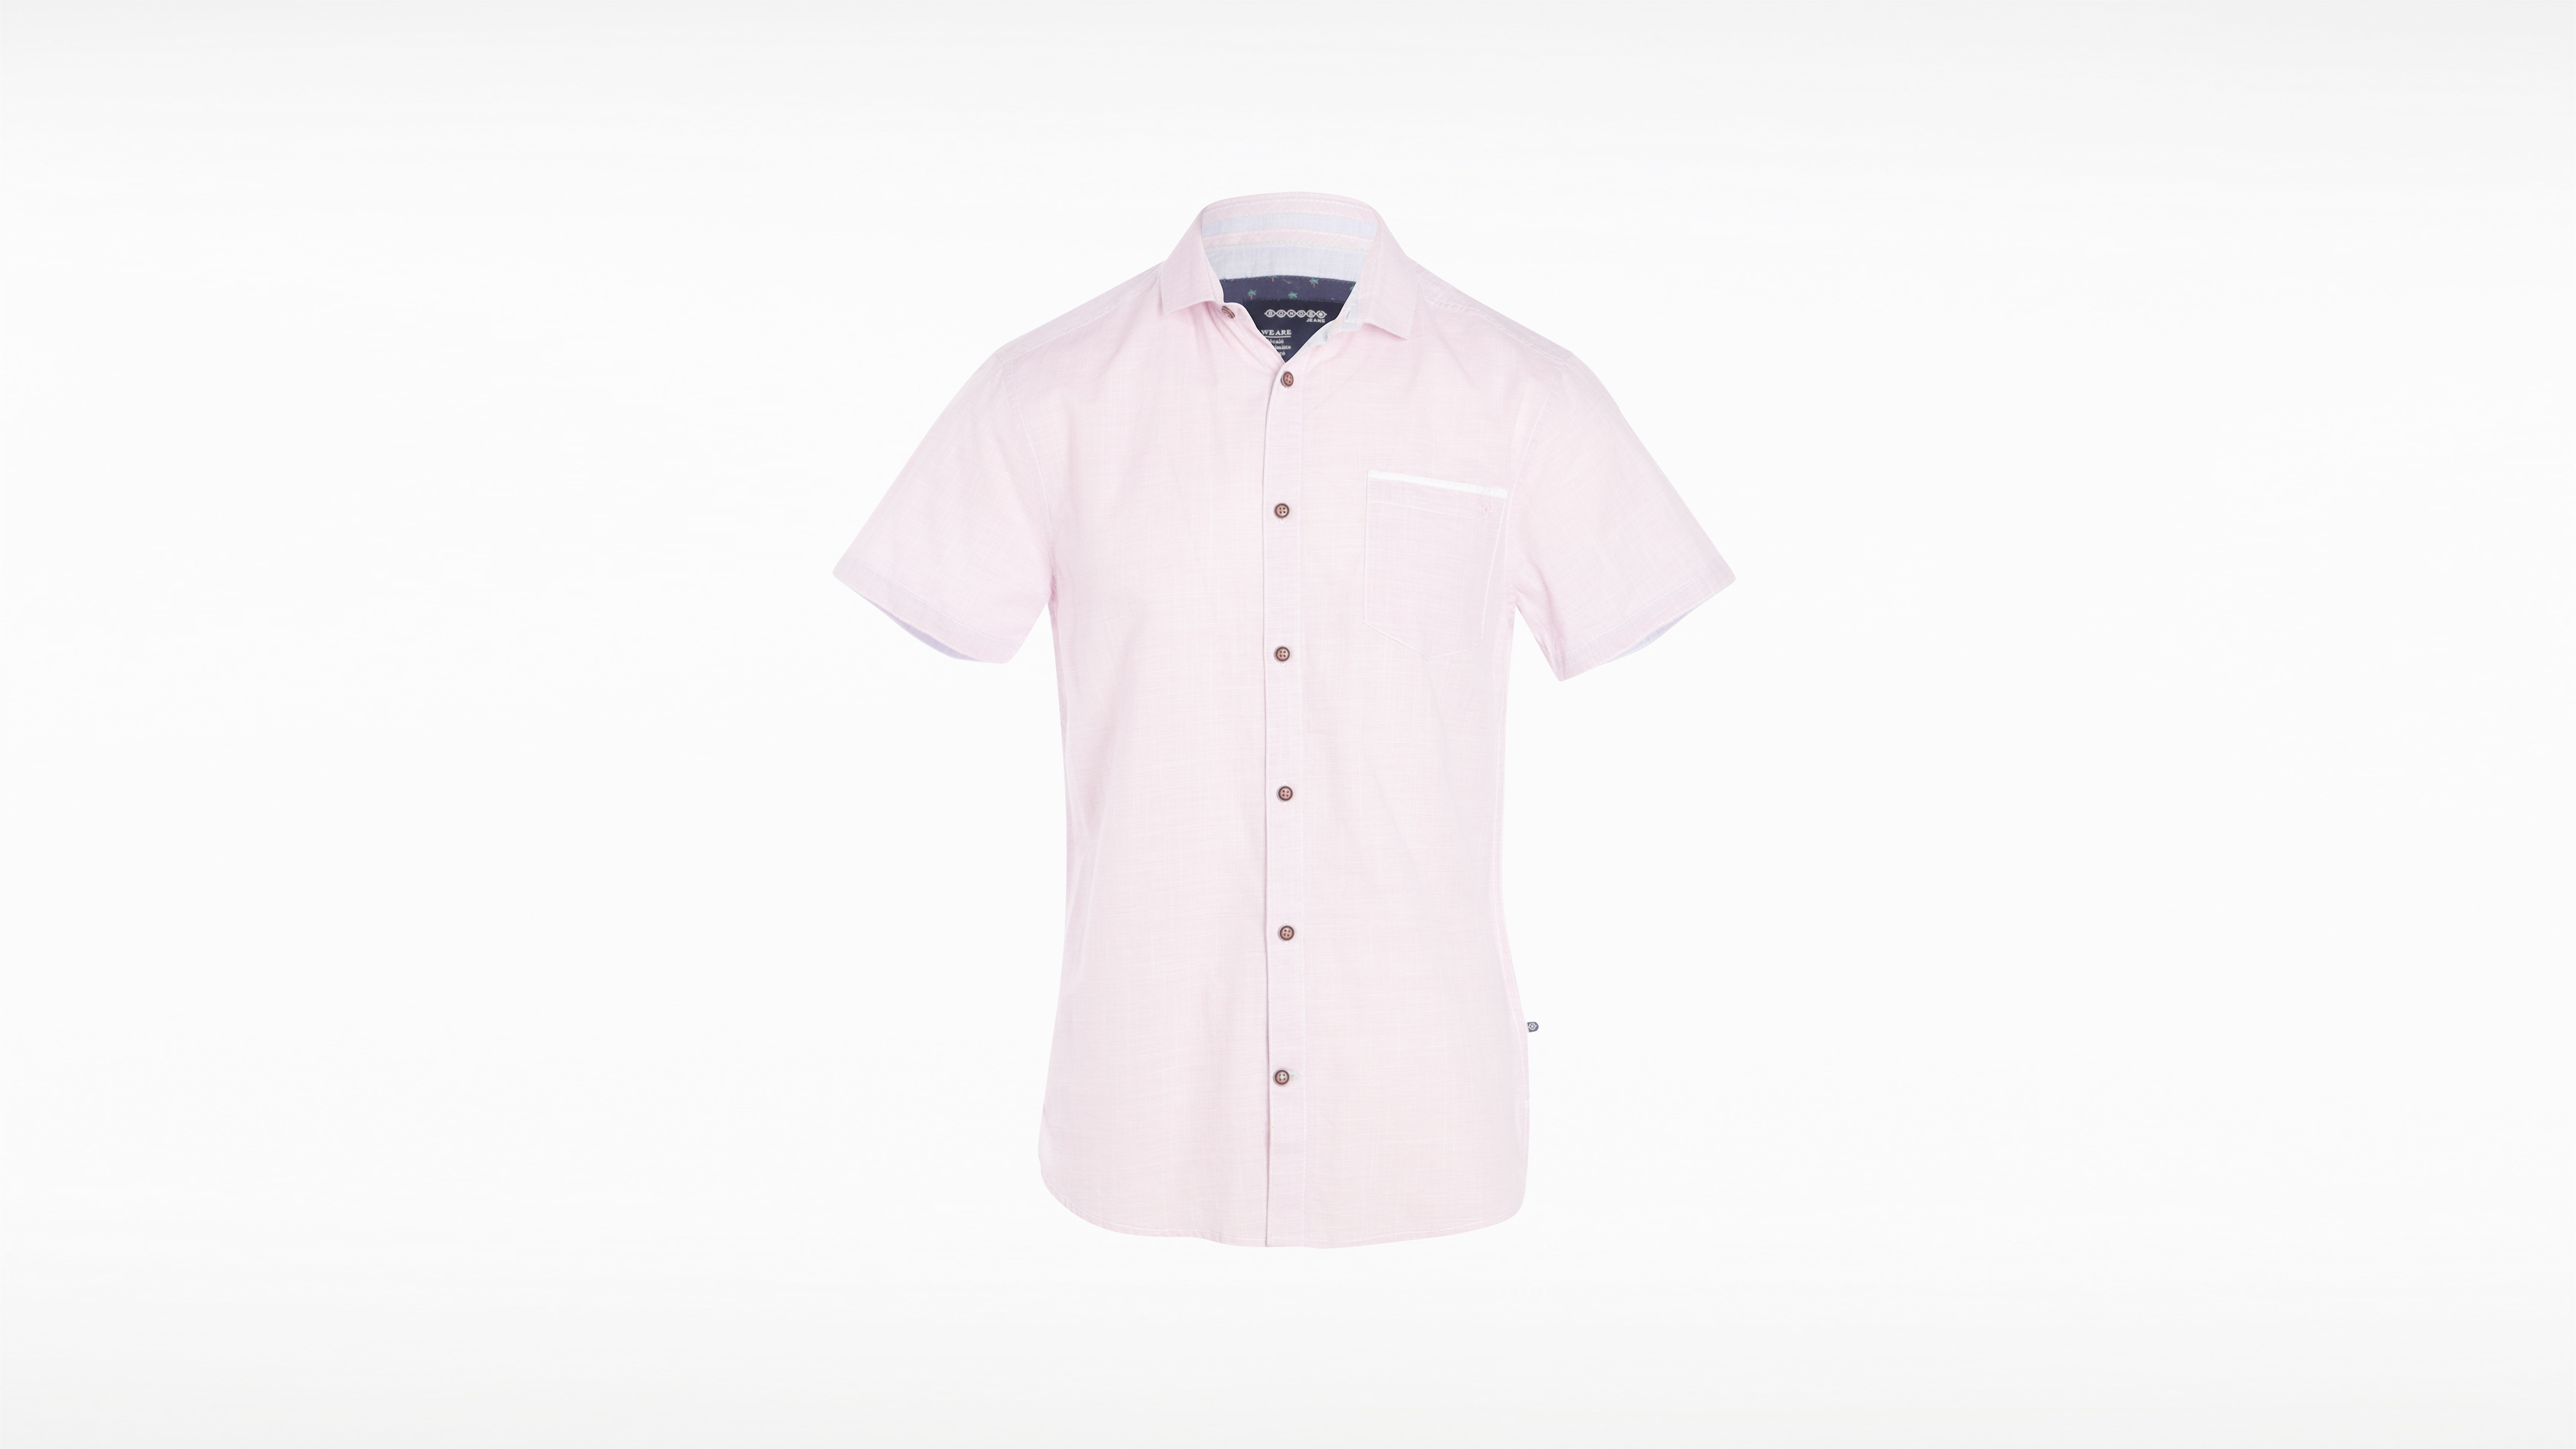 Col Rose Homme Petit Manches Chemise Cerise Courtes bY7v6yfg